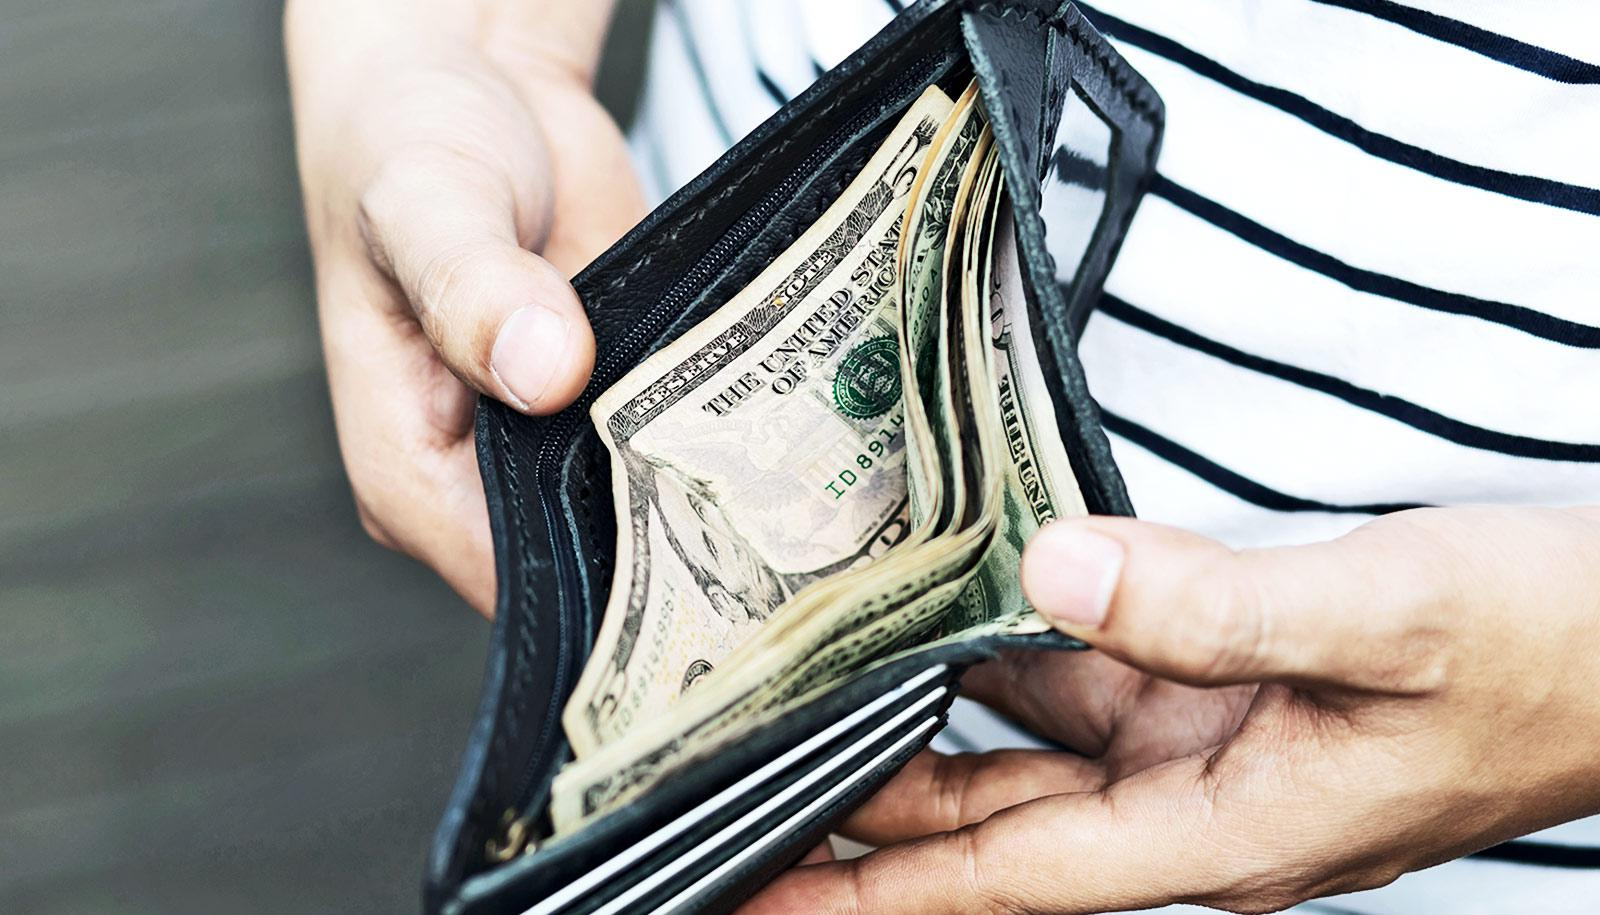 A man looks into his wallet at some cash